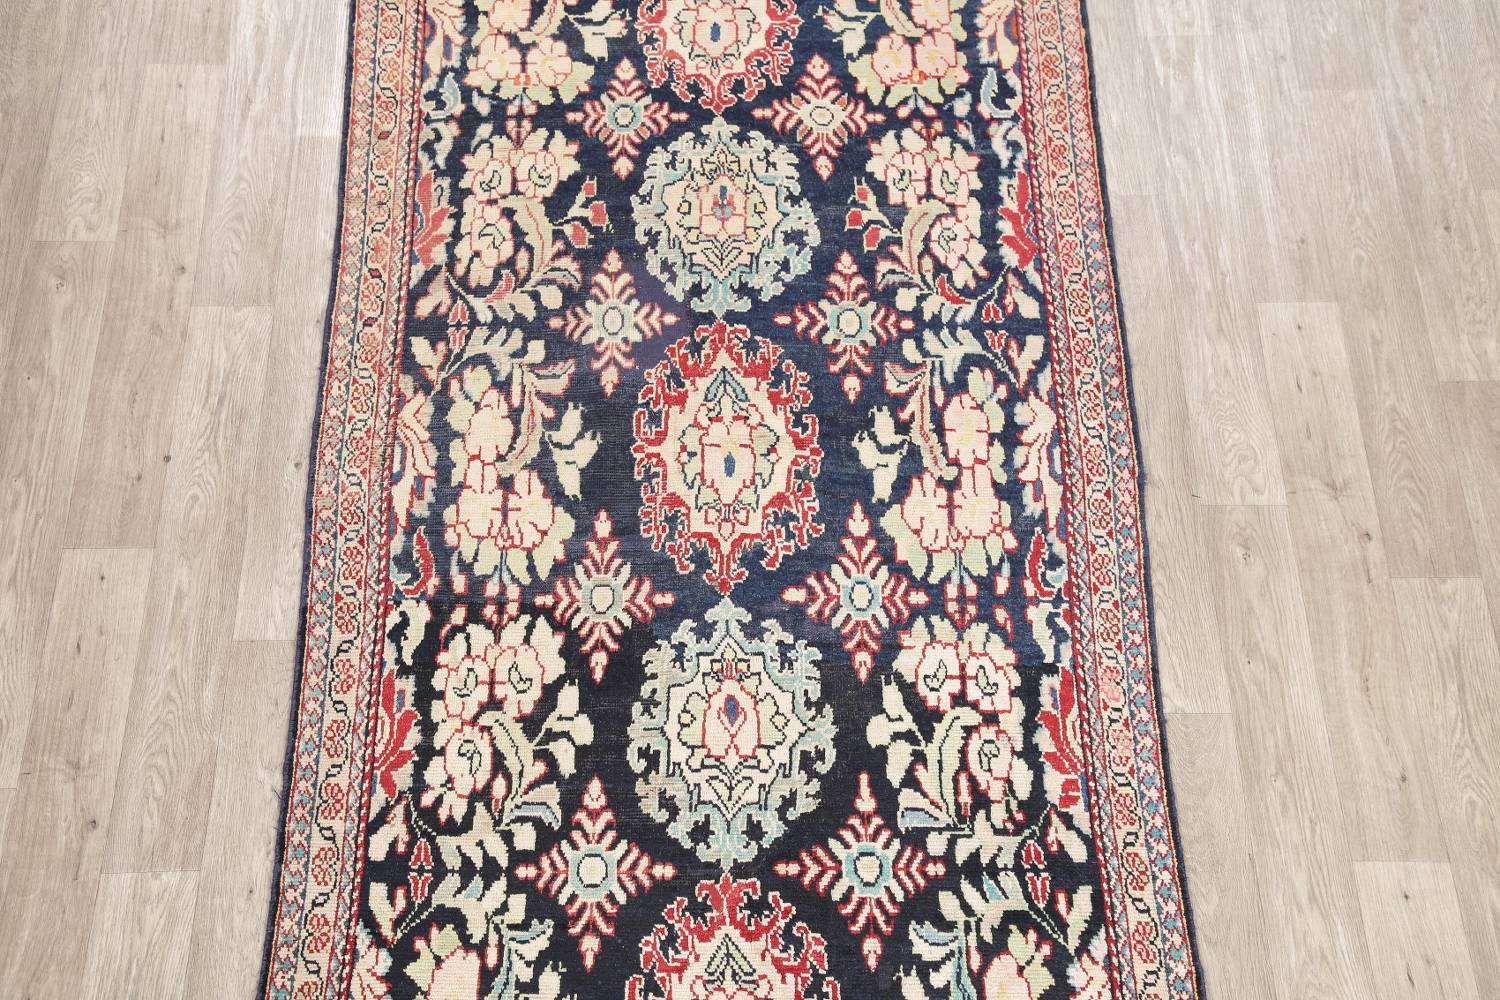 Antique Navy Blue Sultanabad Persian Runner Rug 5x9 image 3